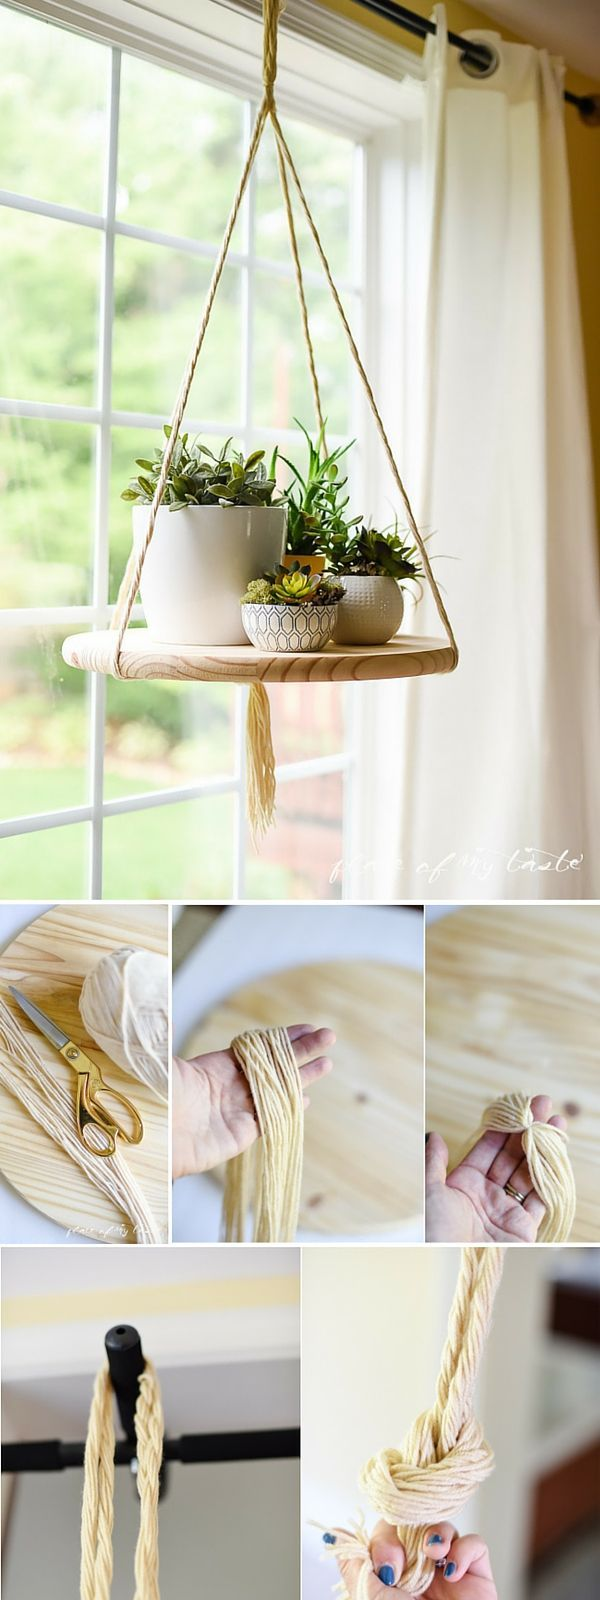 The 25 best crafts home ideas on pinterest diy crafts at home this is an amazing and very simple project and fun home decor piece as well find this pin and more on diy solutioingenieria